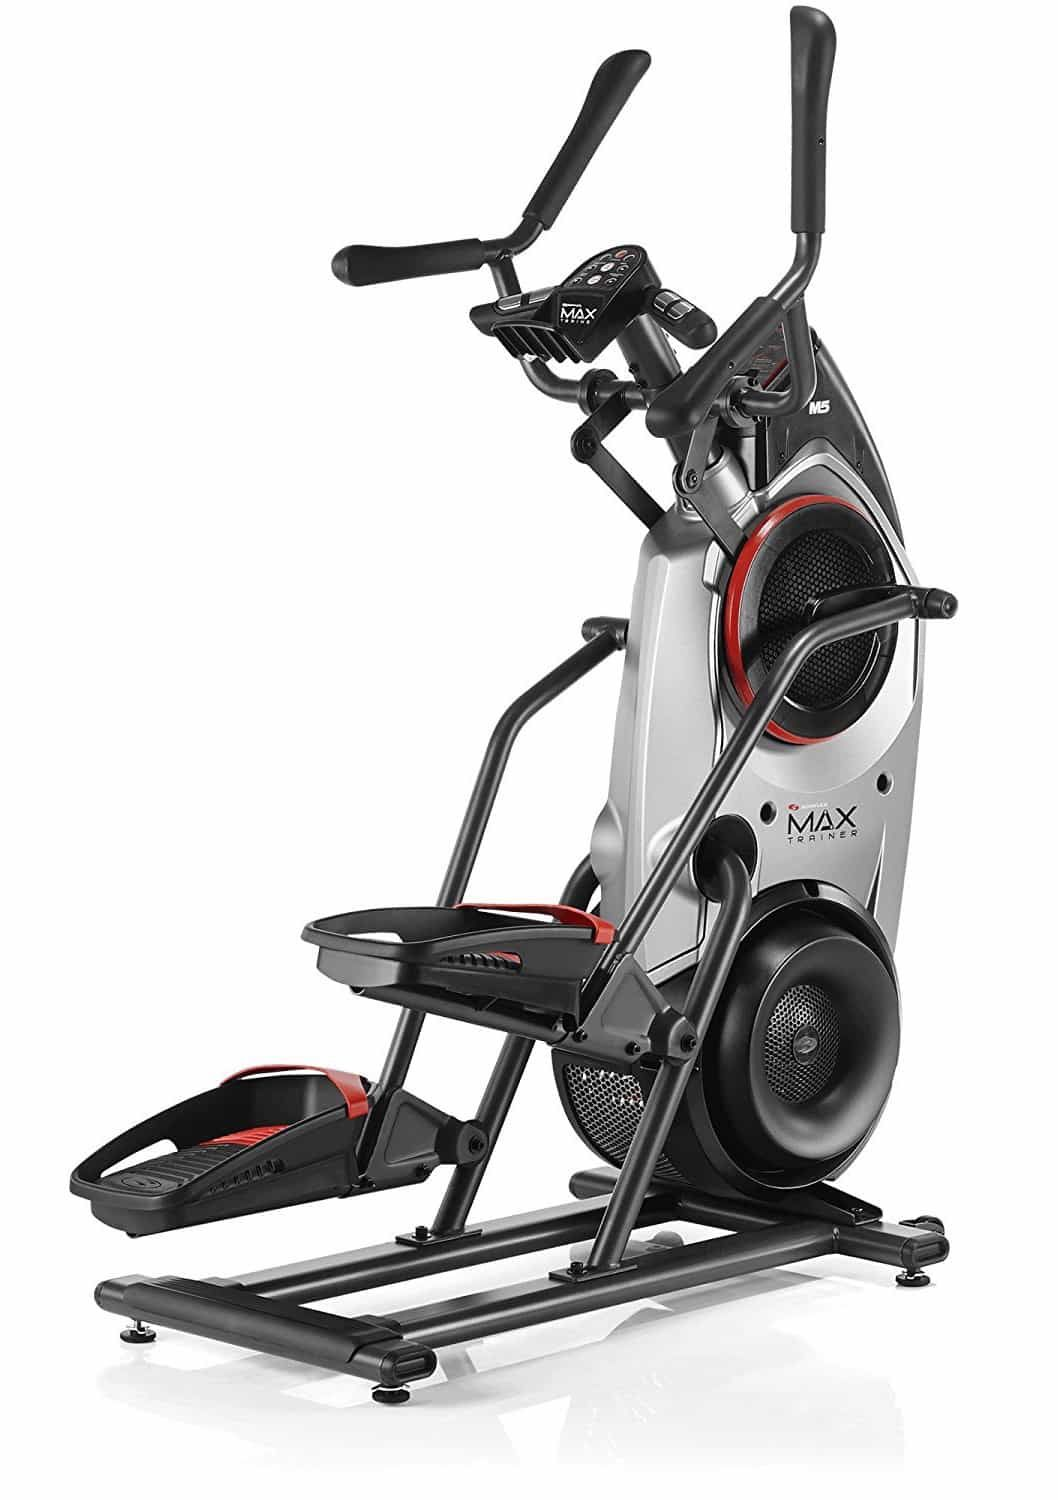 Bowflex max trainer reviews for 2021 the best max